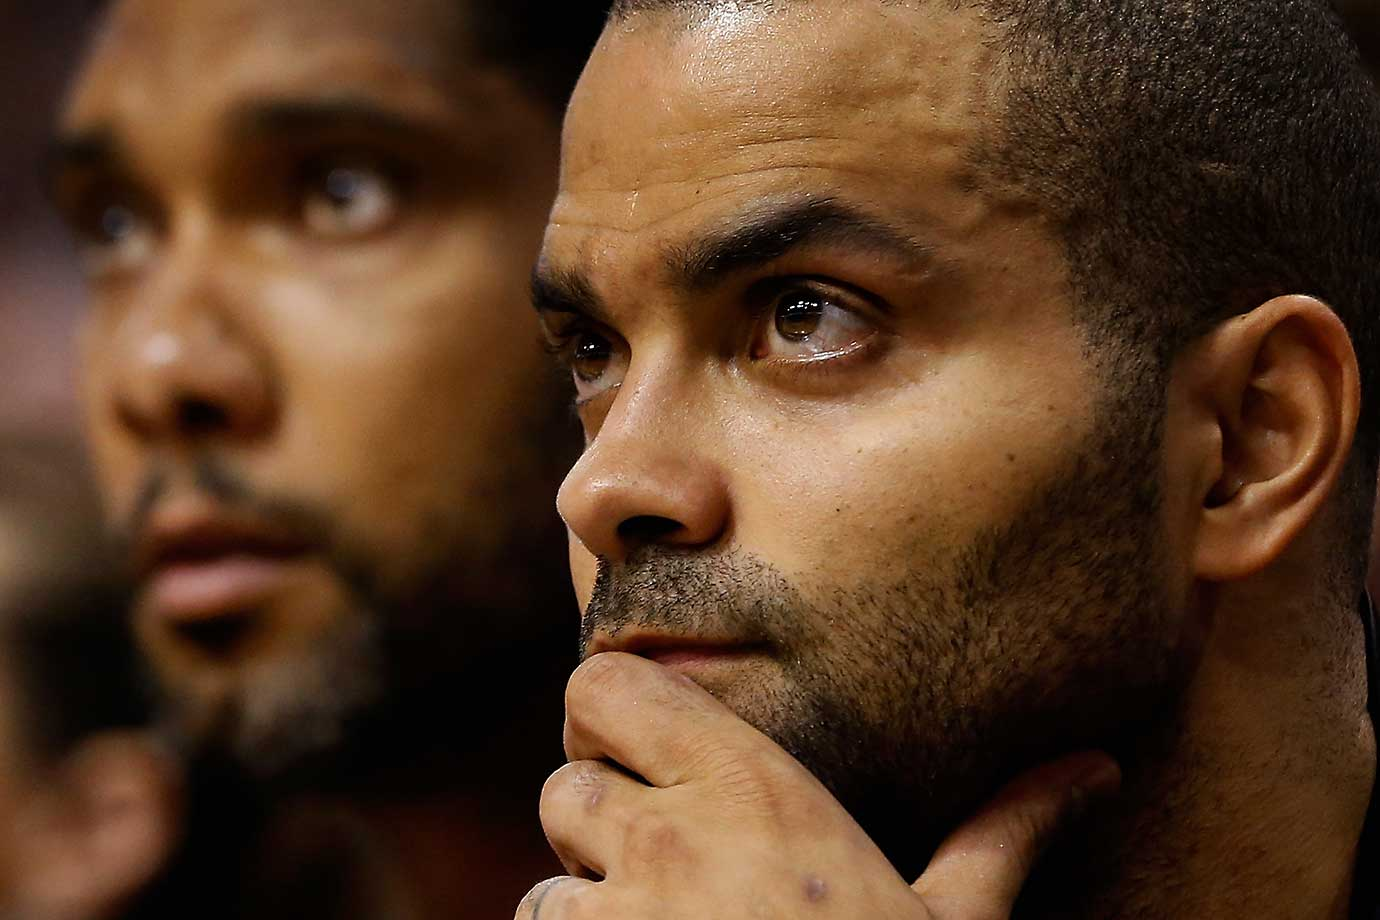 Tony Parker and Tim Duncan of the San Antonio Spurs watch from the bench in a game at Phoenix.